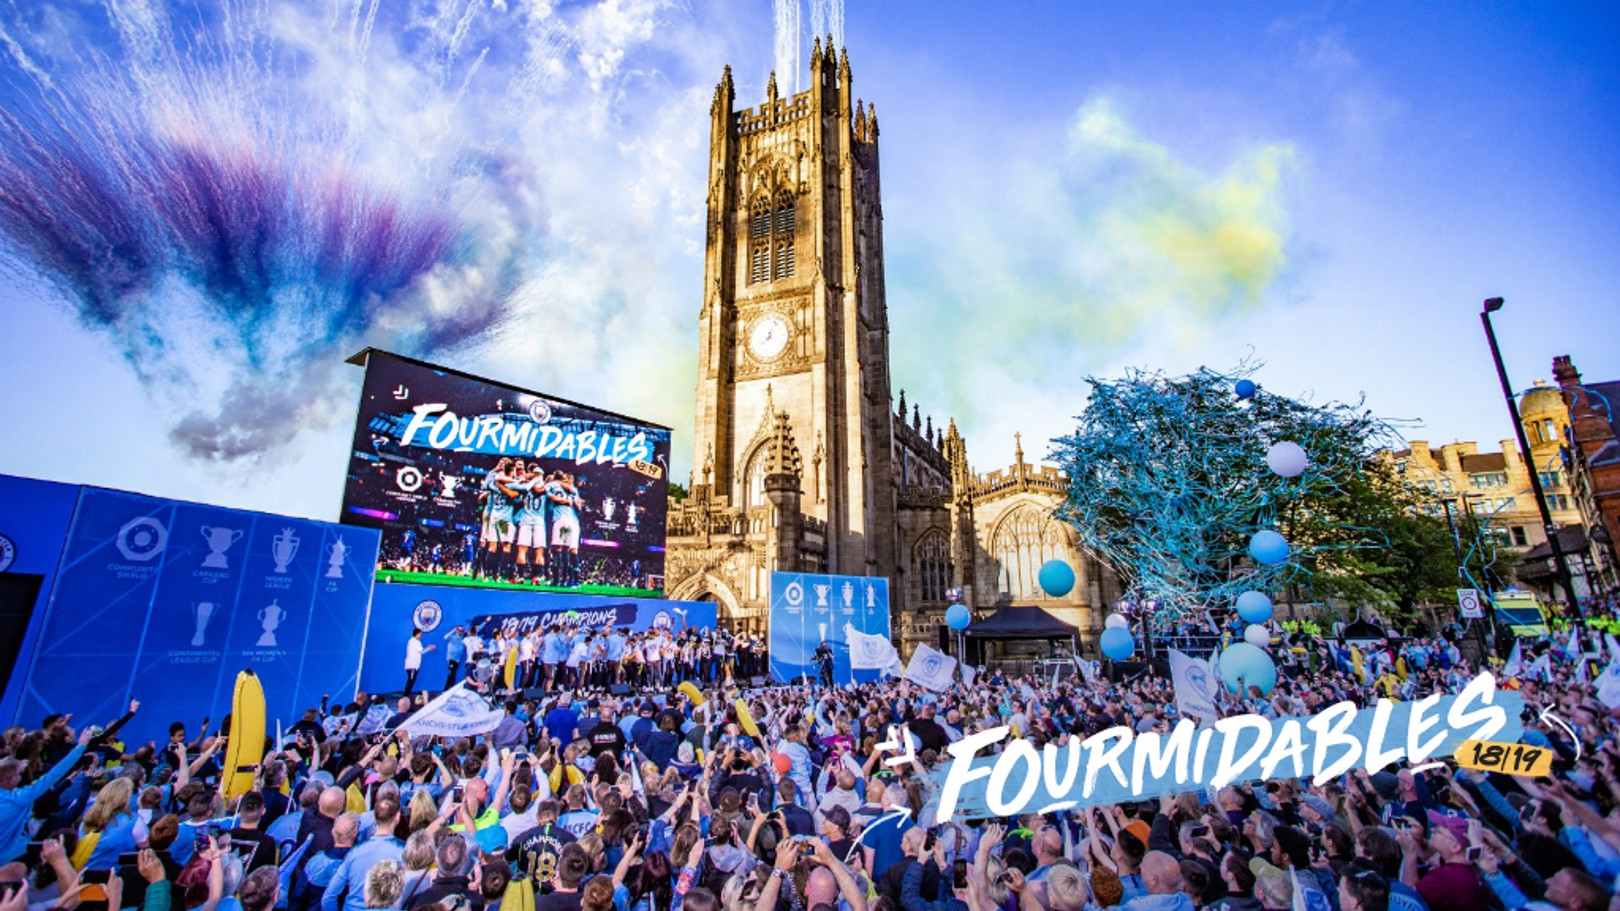 Manchester is Blue: What a sight!